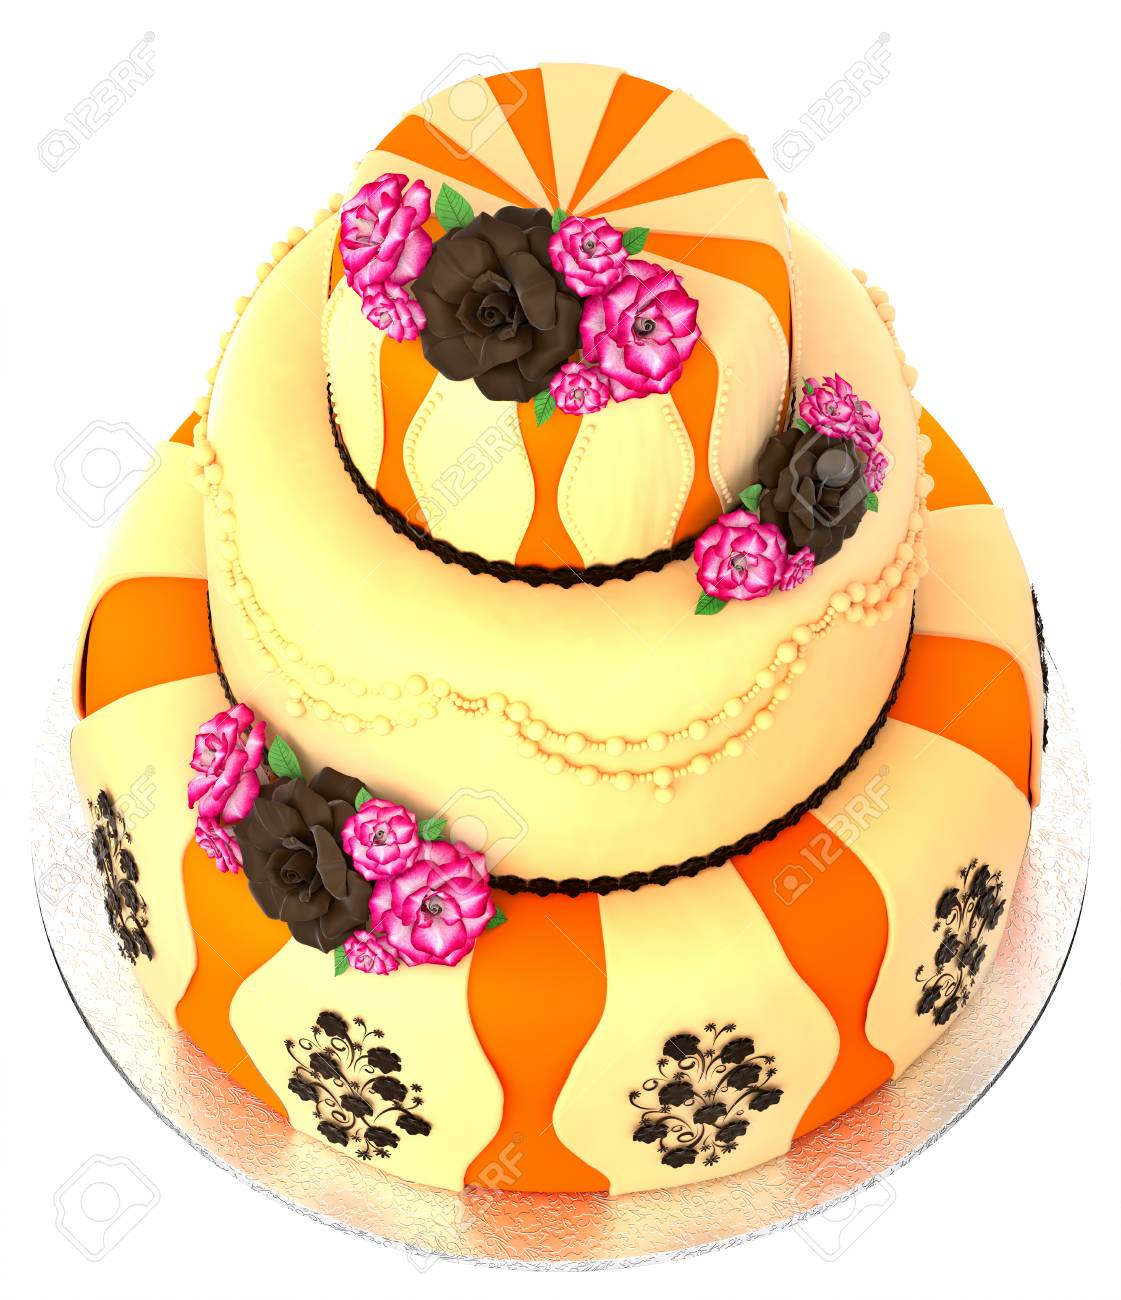 Phenomenal Three Tier Cake With 3 Layer Decorated Chocolate Rose And Flowers Funny Birthday Cards Online Elaedamsfinfo